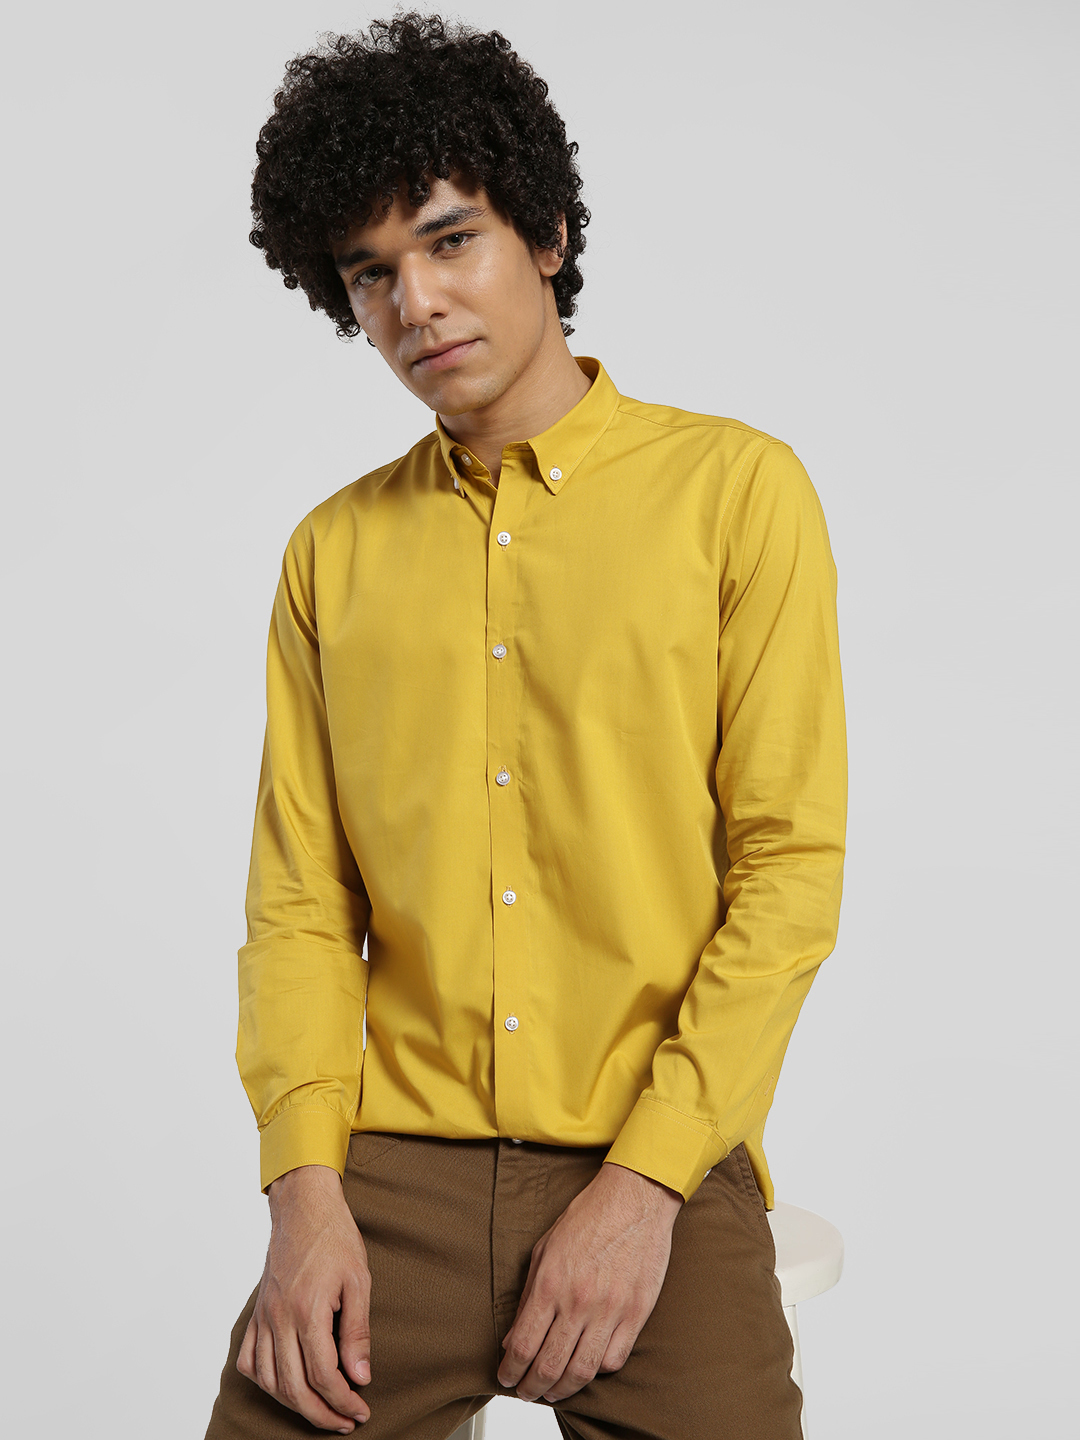 Green Hill Mustard Basic Long Sleeve Shirt 1